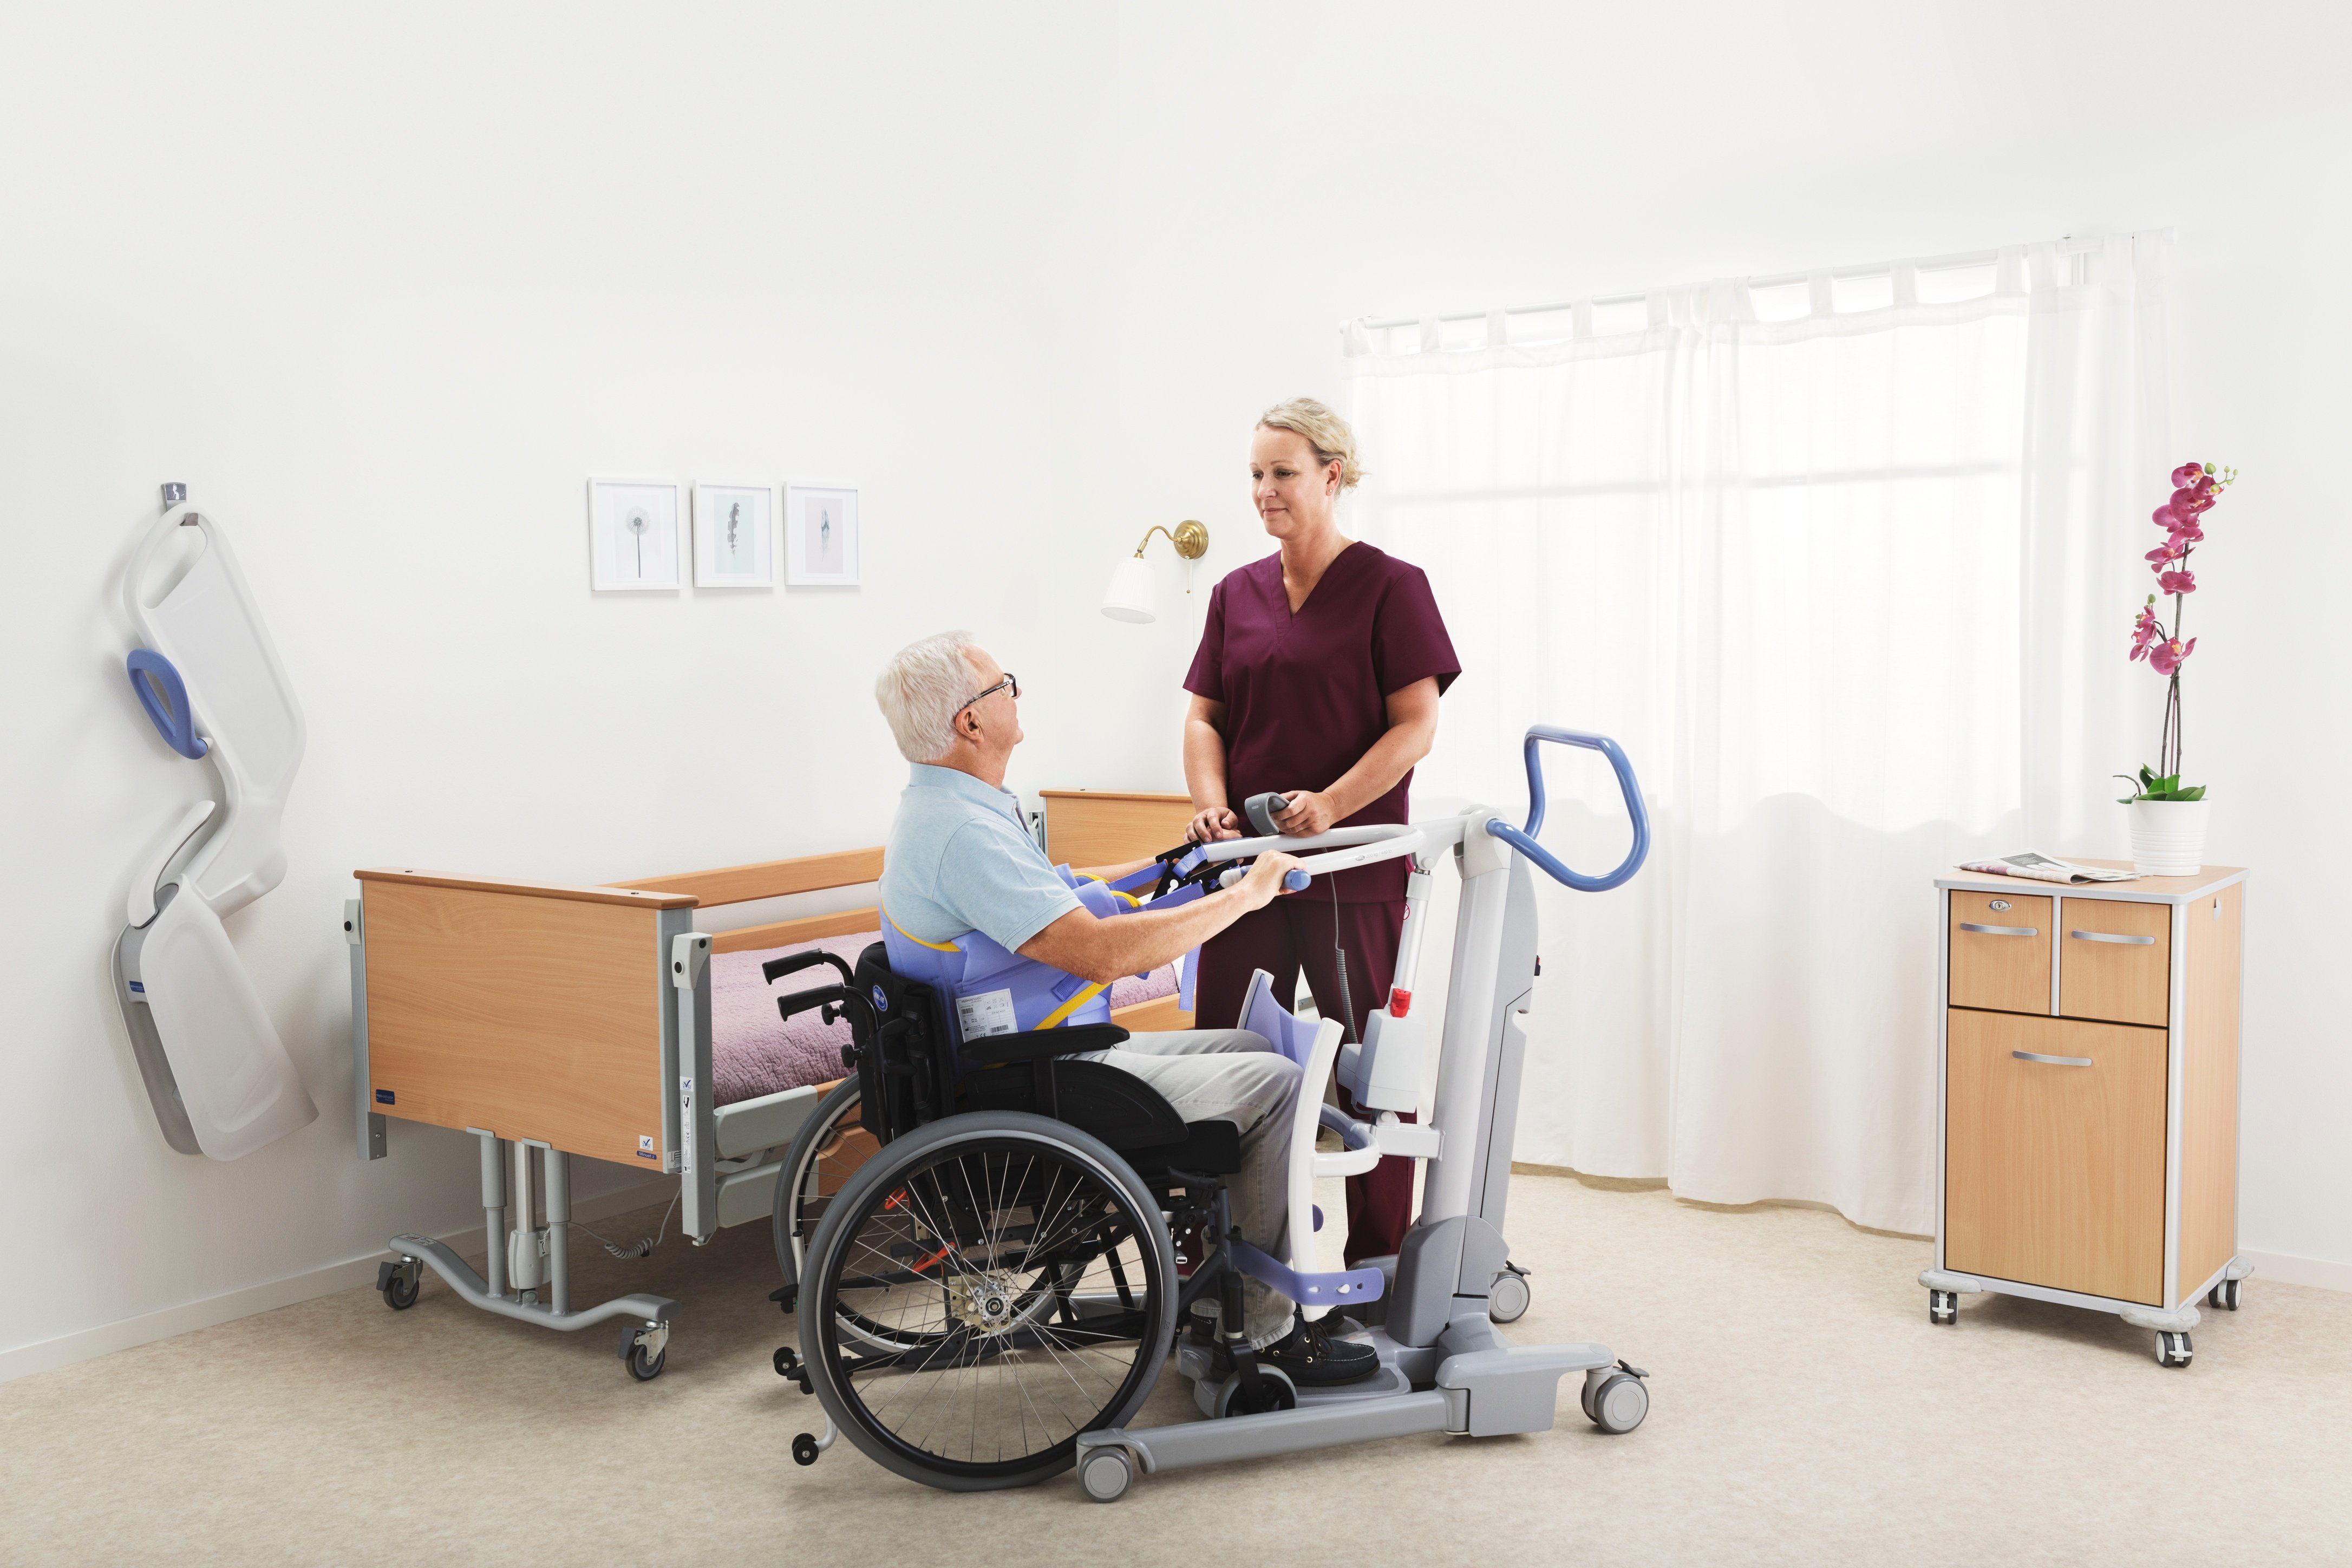 How many sit-to-stand transfers do caregivers complete with their patients each day?